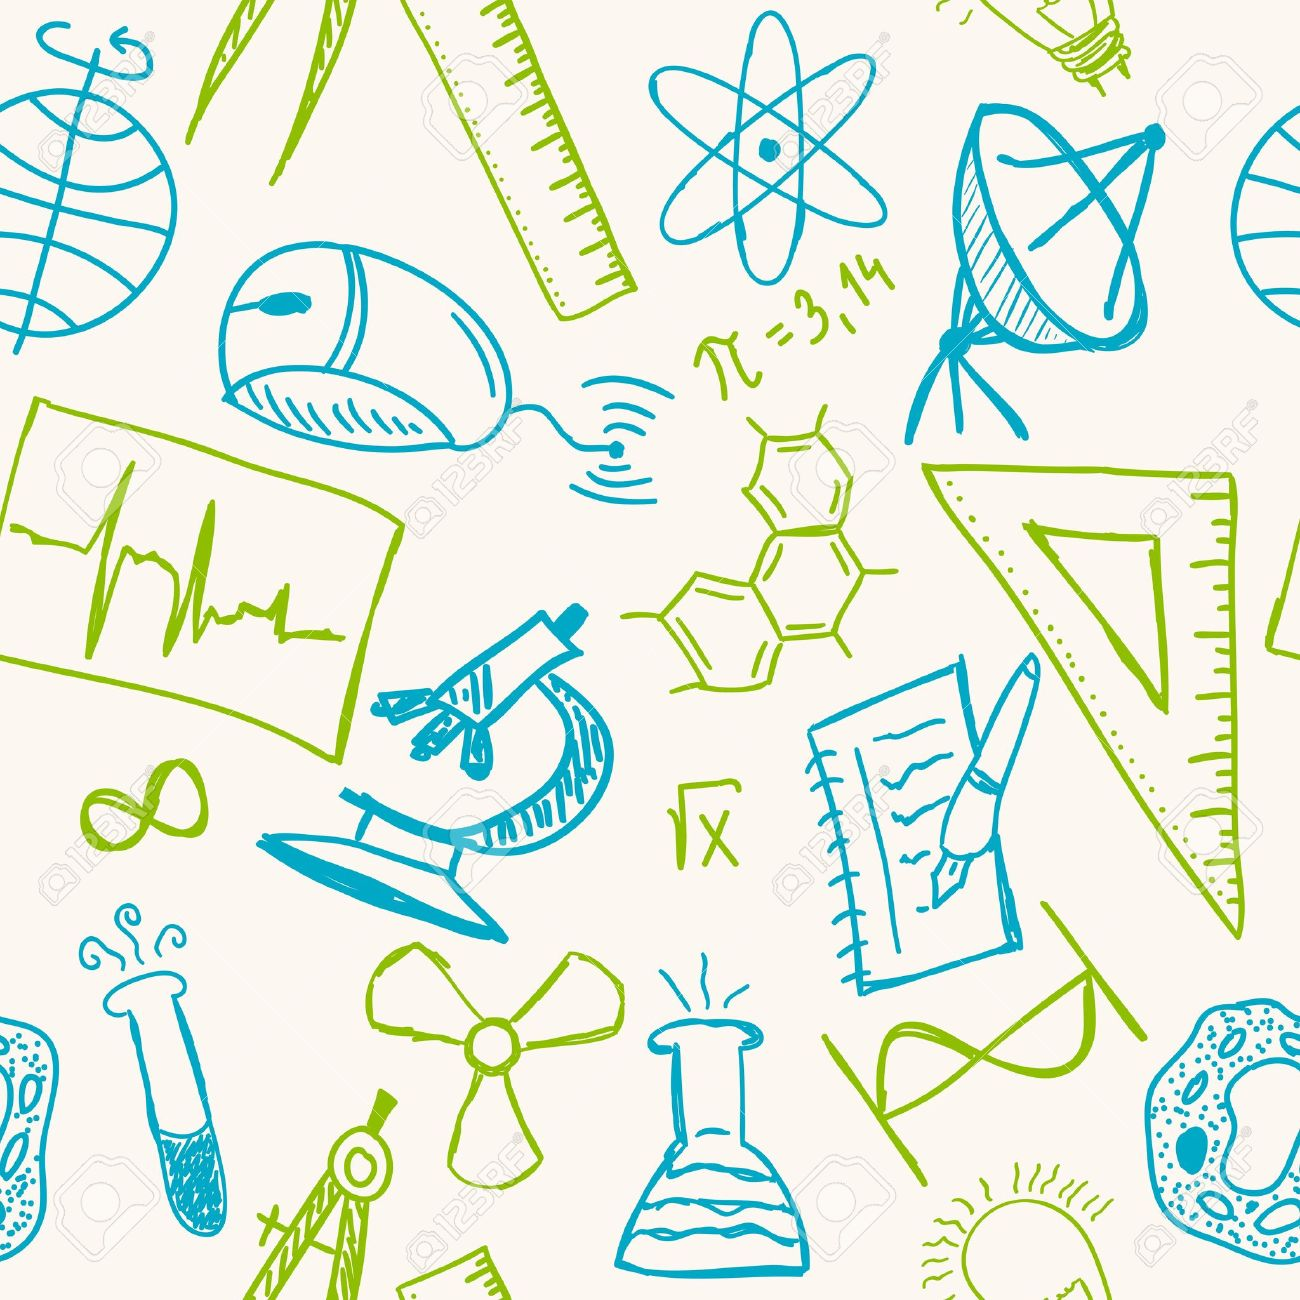 Science Drawings On Seamless Pattern Scientific Background Royalty Free Cliparts Vectors And Stock Illustration Image 15196650